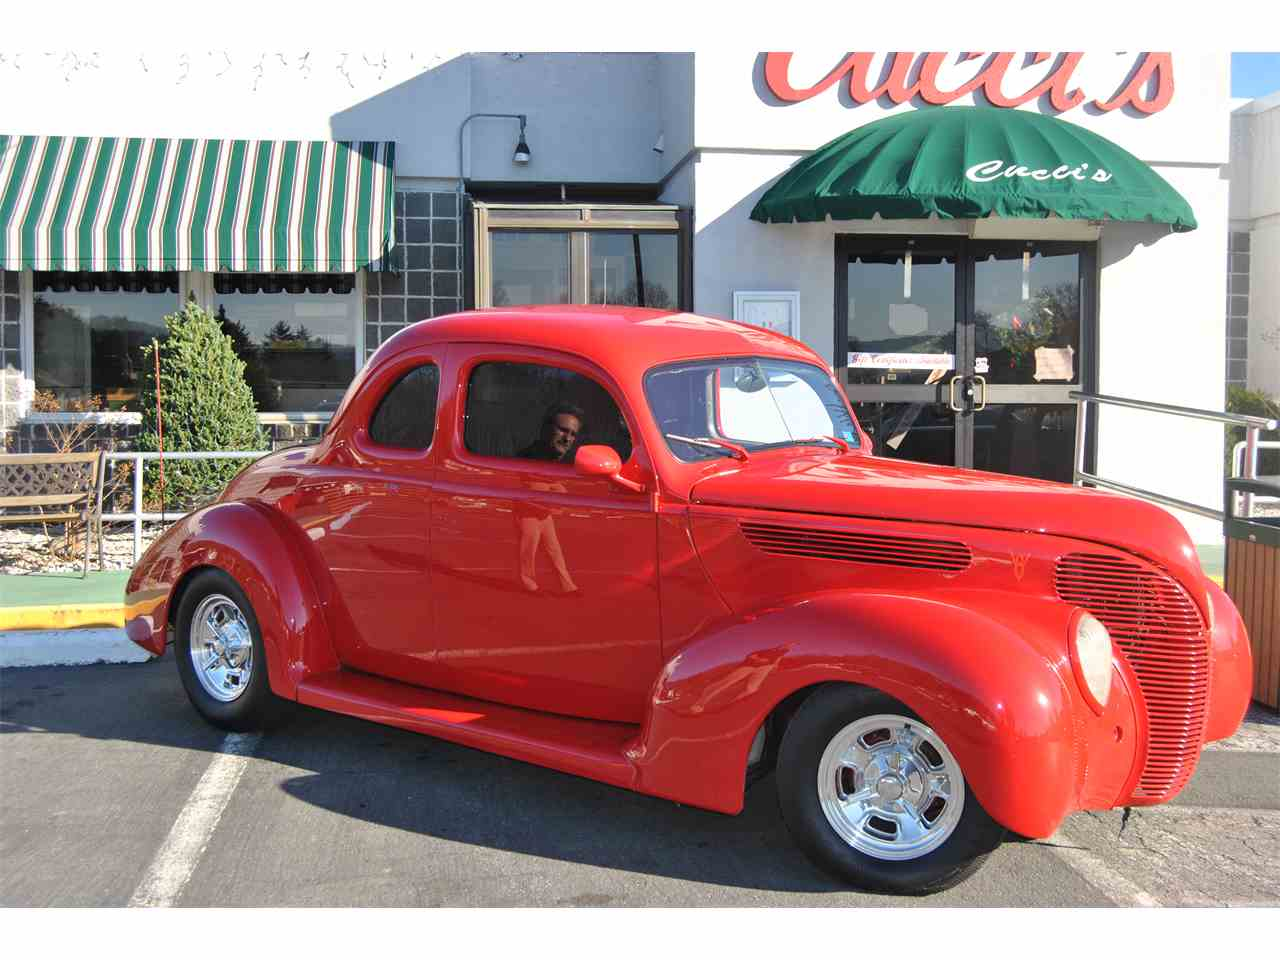 1938 Ford Coupe for Sale - CC-931561 & 1938 Ford Coupe for Sale | ClassicCars.com | CC-931561 markmcfarlin.com